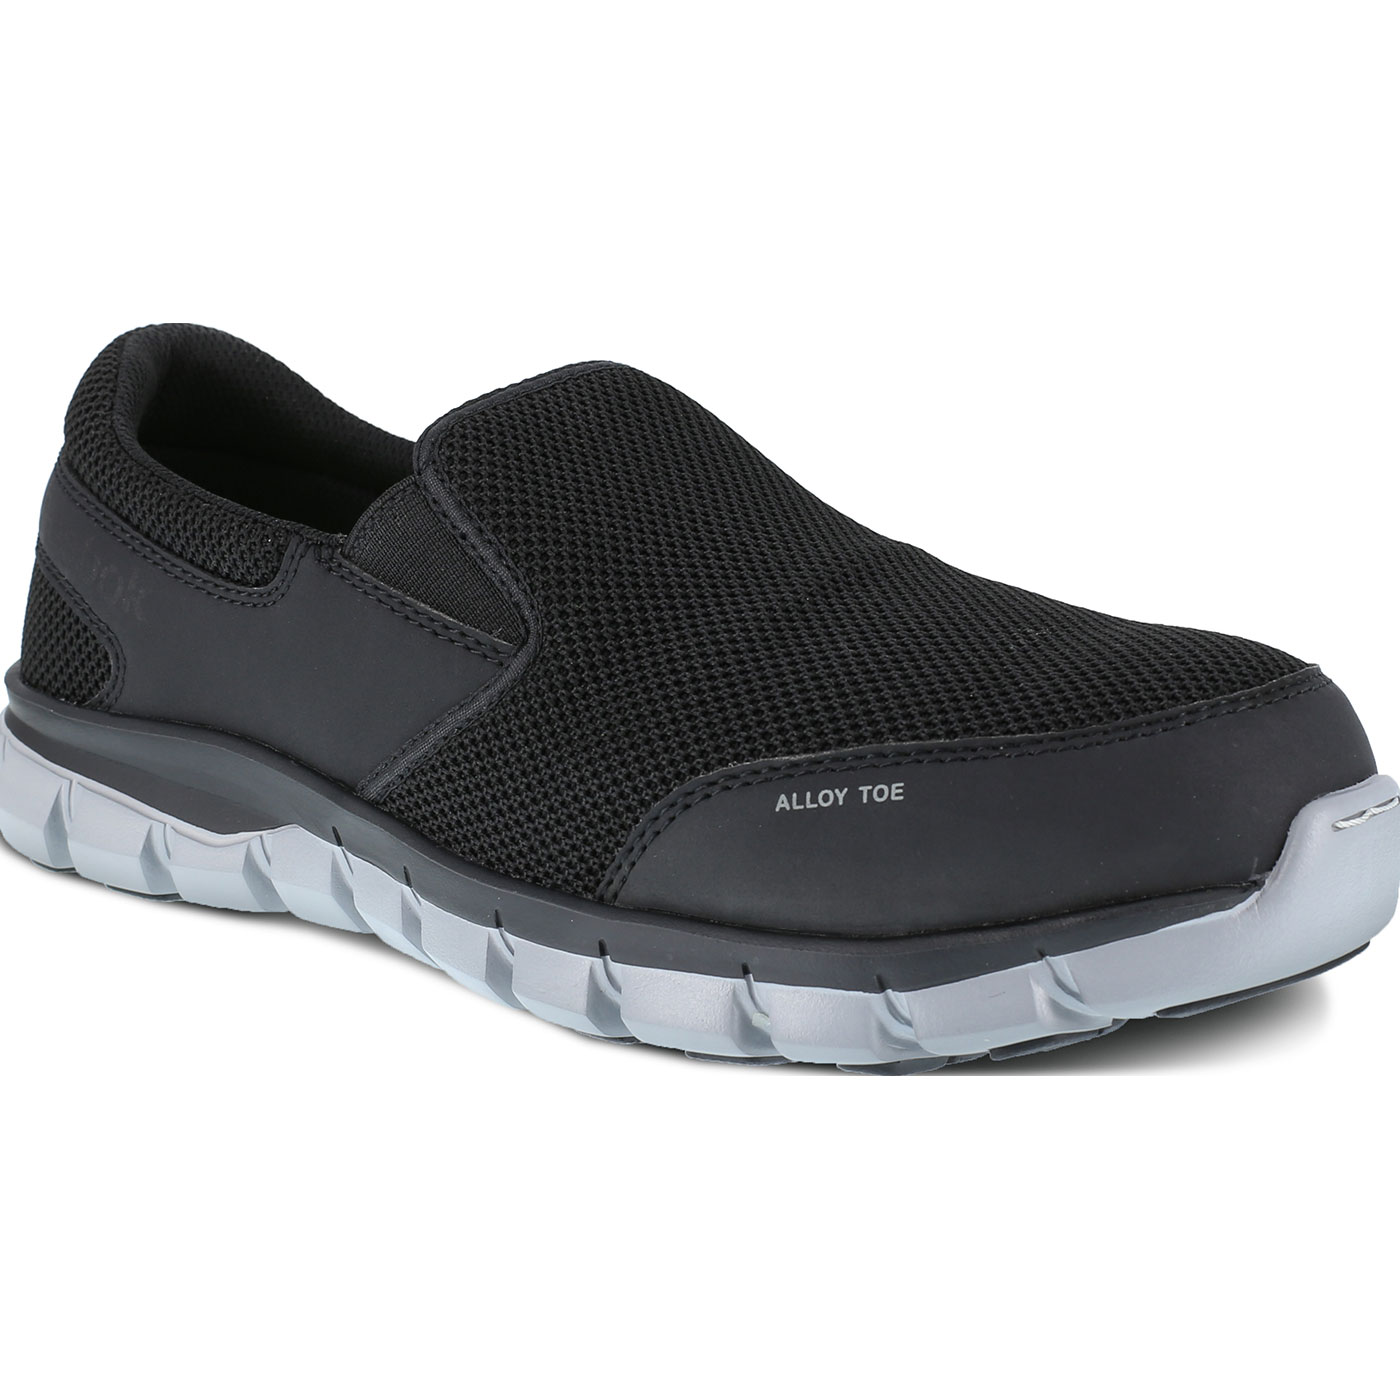 d77a0ff1f86d Reebok Sublite Cushion Work Men s Alloy Toe Electrical Hazard Work Athletic  Oxford Slip-on Shoe